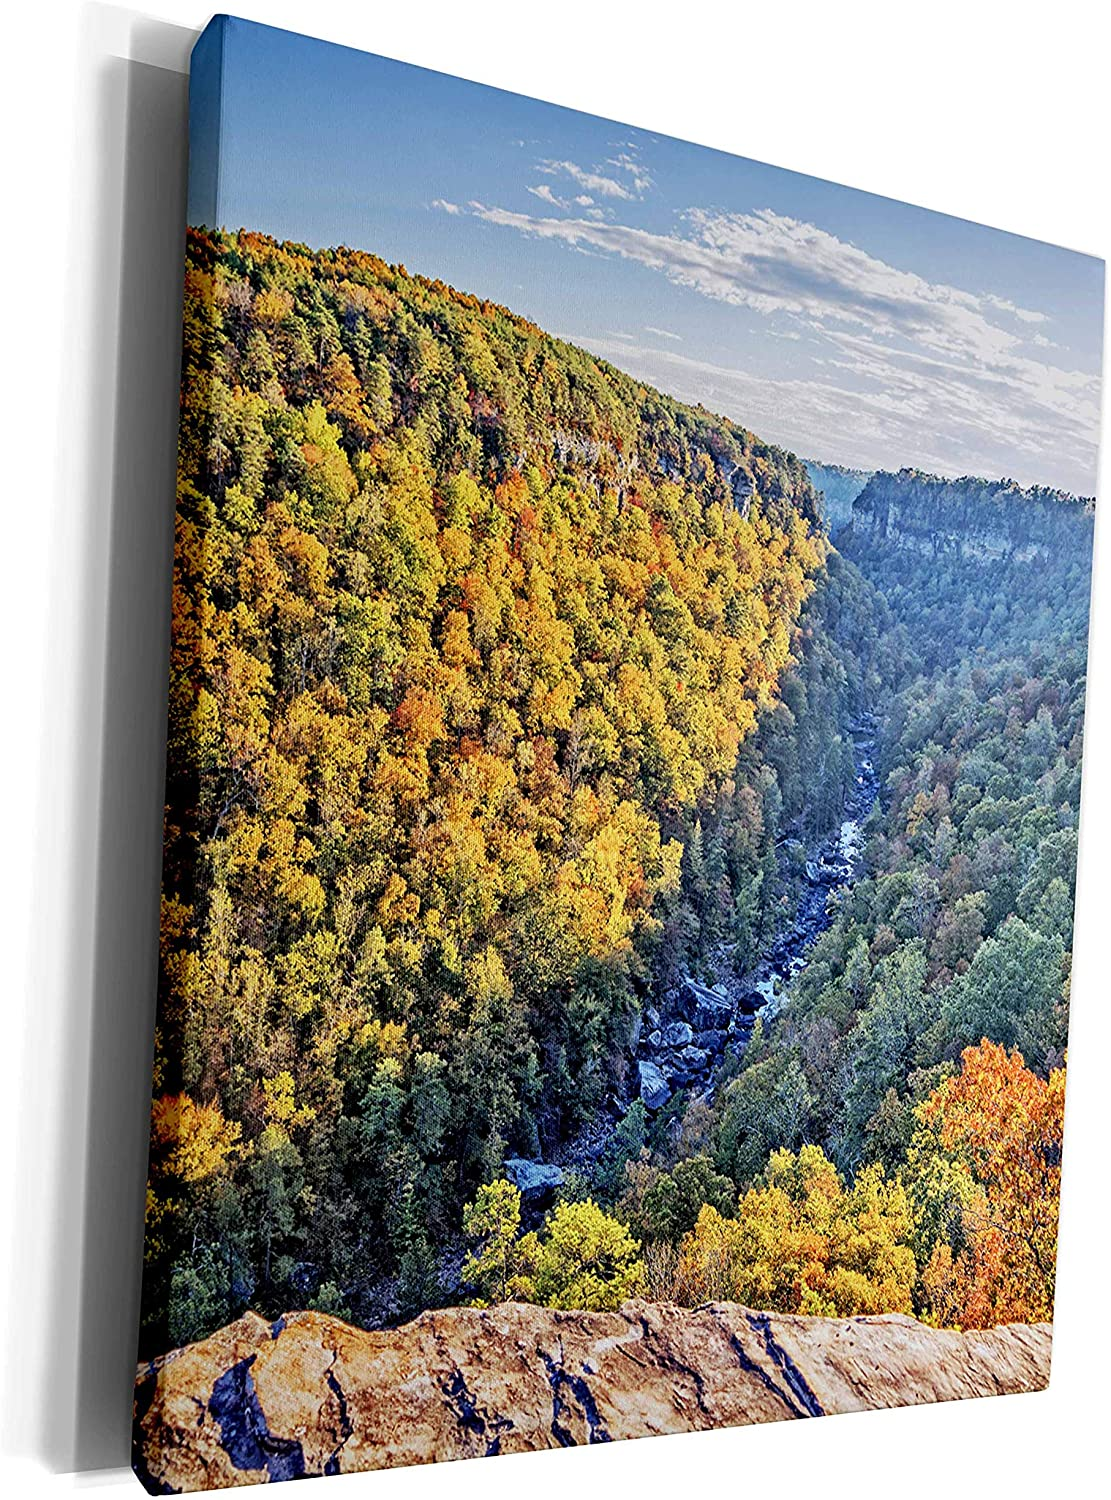 3dRose Boehm Photography Landscape - The Magnificent Little River Canyon National Preserve of Alabama - Museum Grade Canvas Wrap (cw_253208_1)